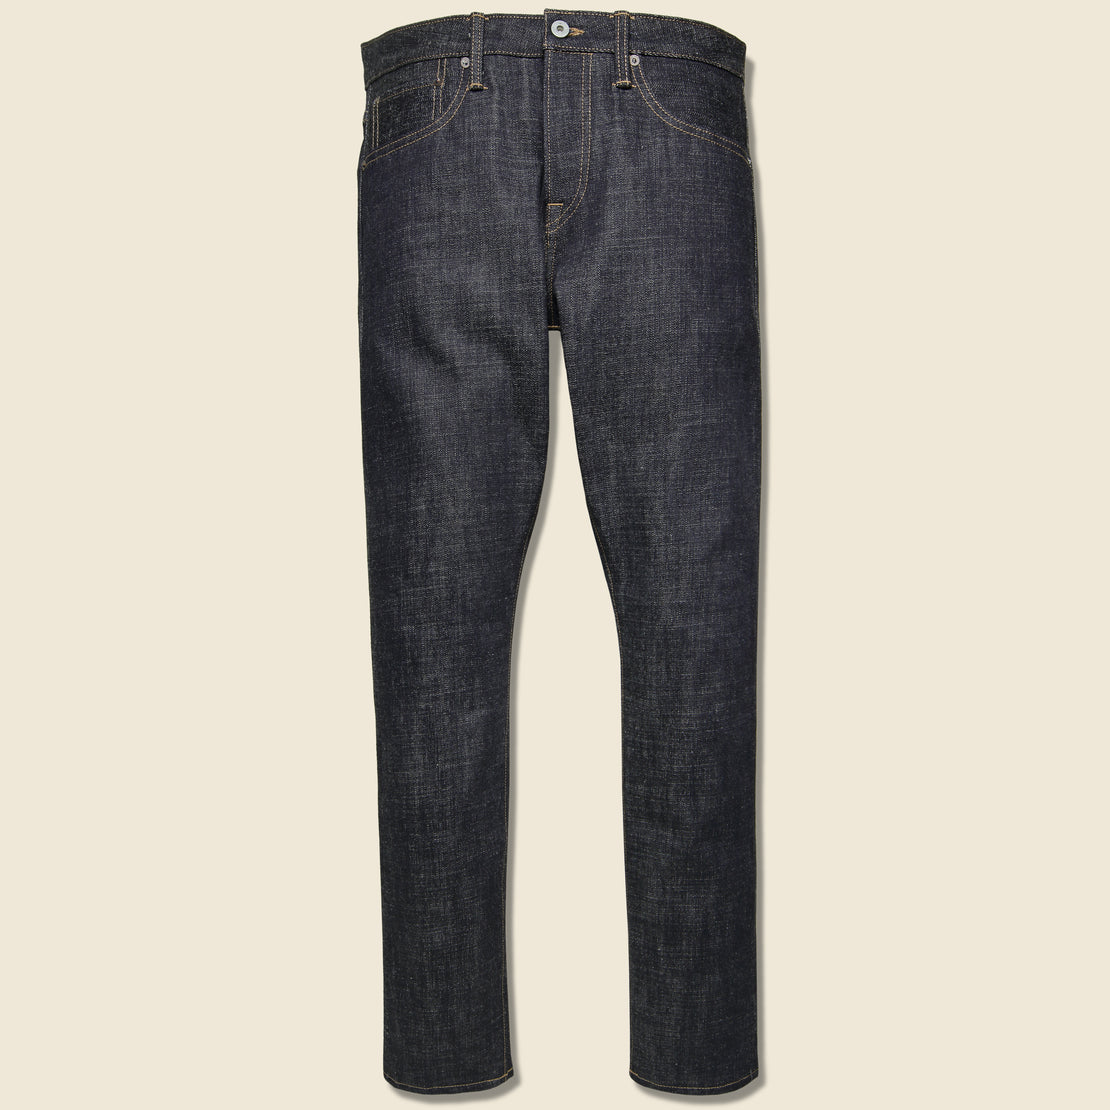 Rogue Territory Strong Taper 13.5oz - Cryptic Indigo